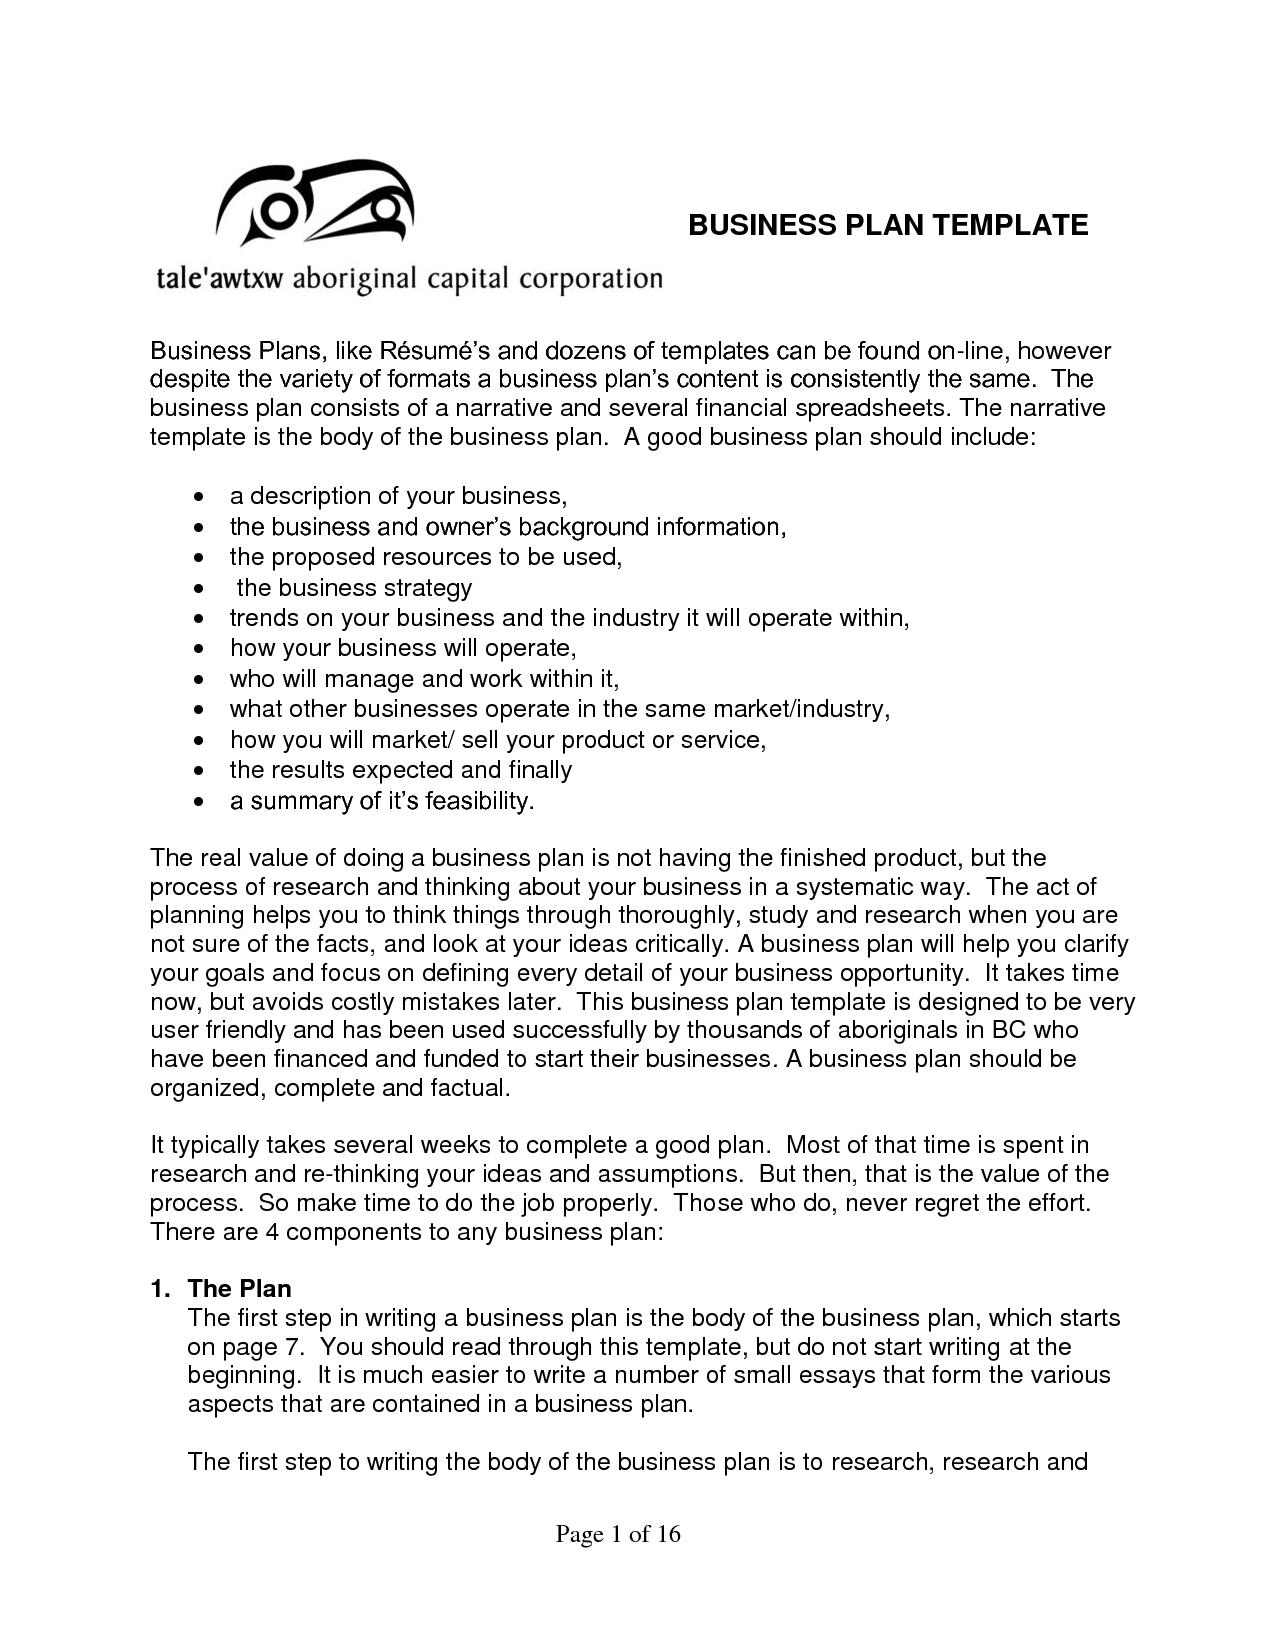 how to start a business essay cover letter examples for essay how  start up business plans planning business strategies business plan examples and templates docs